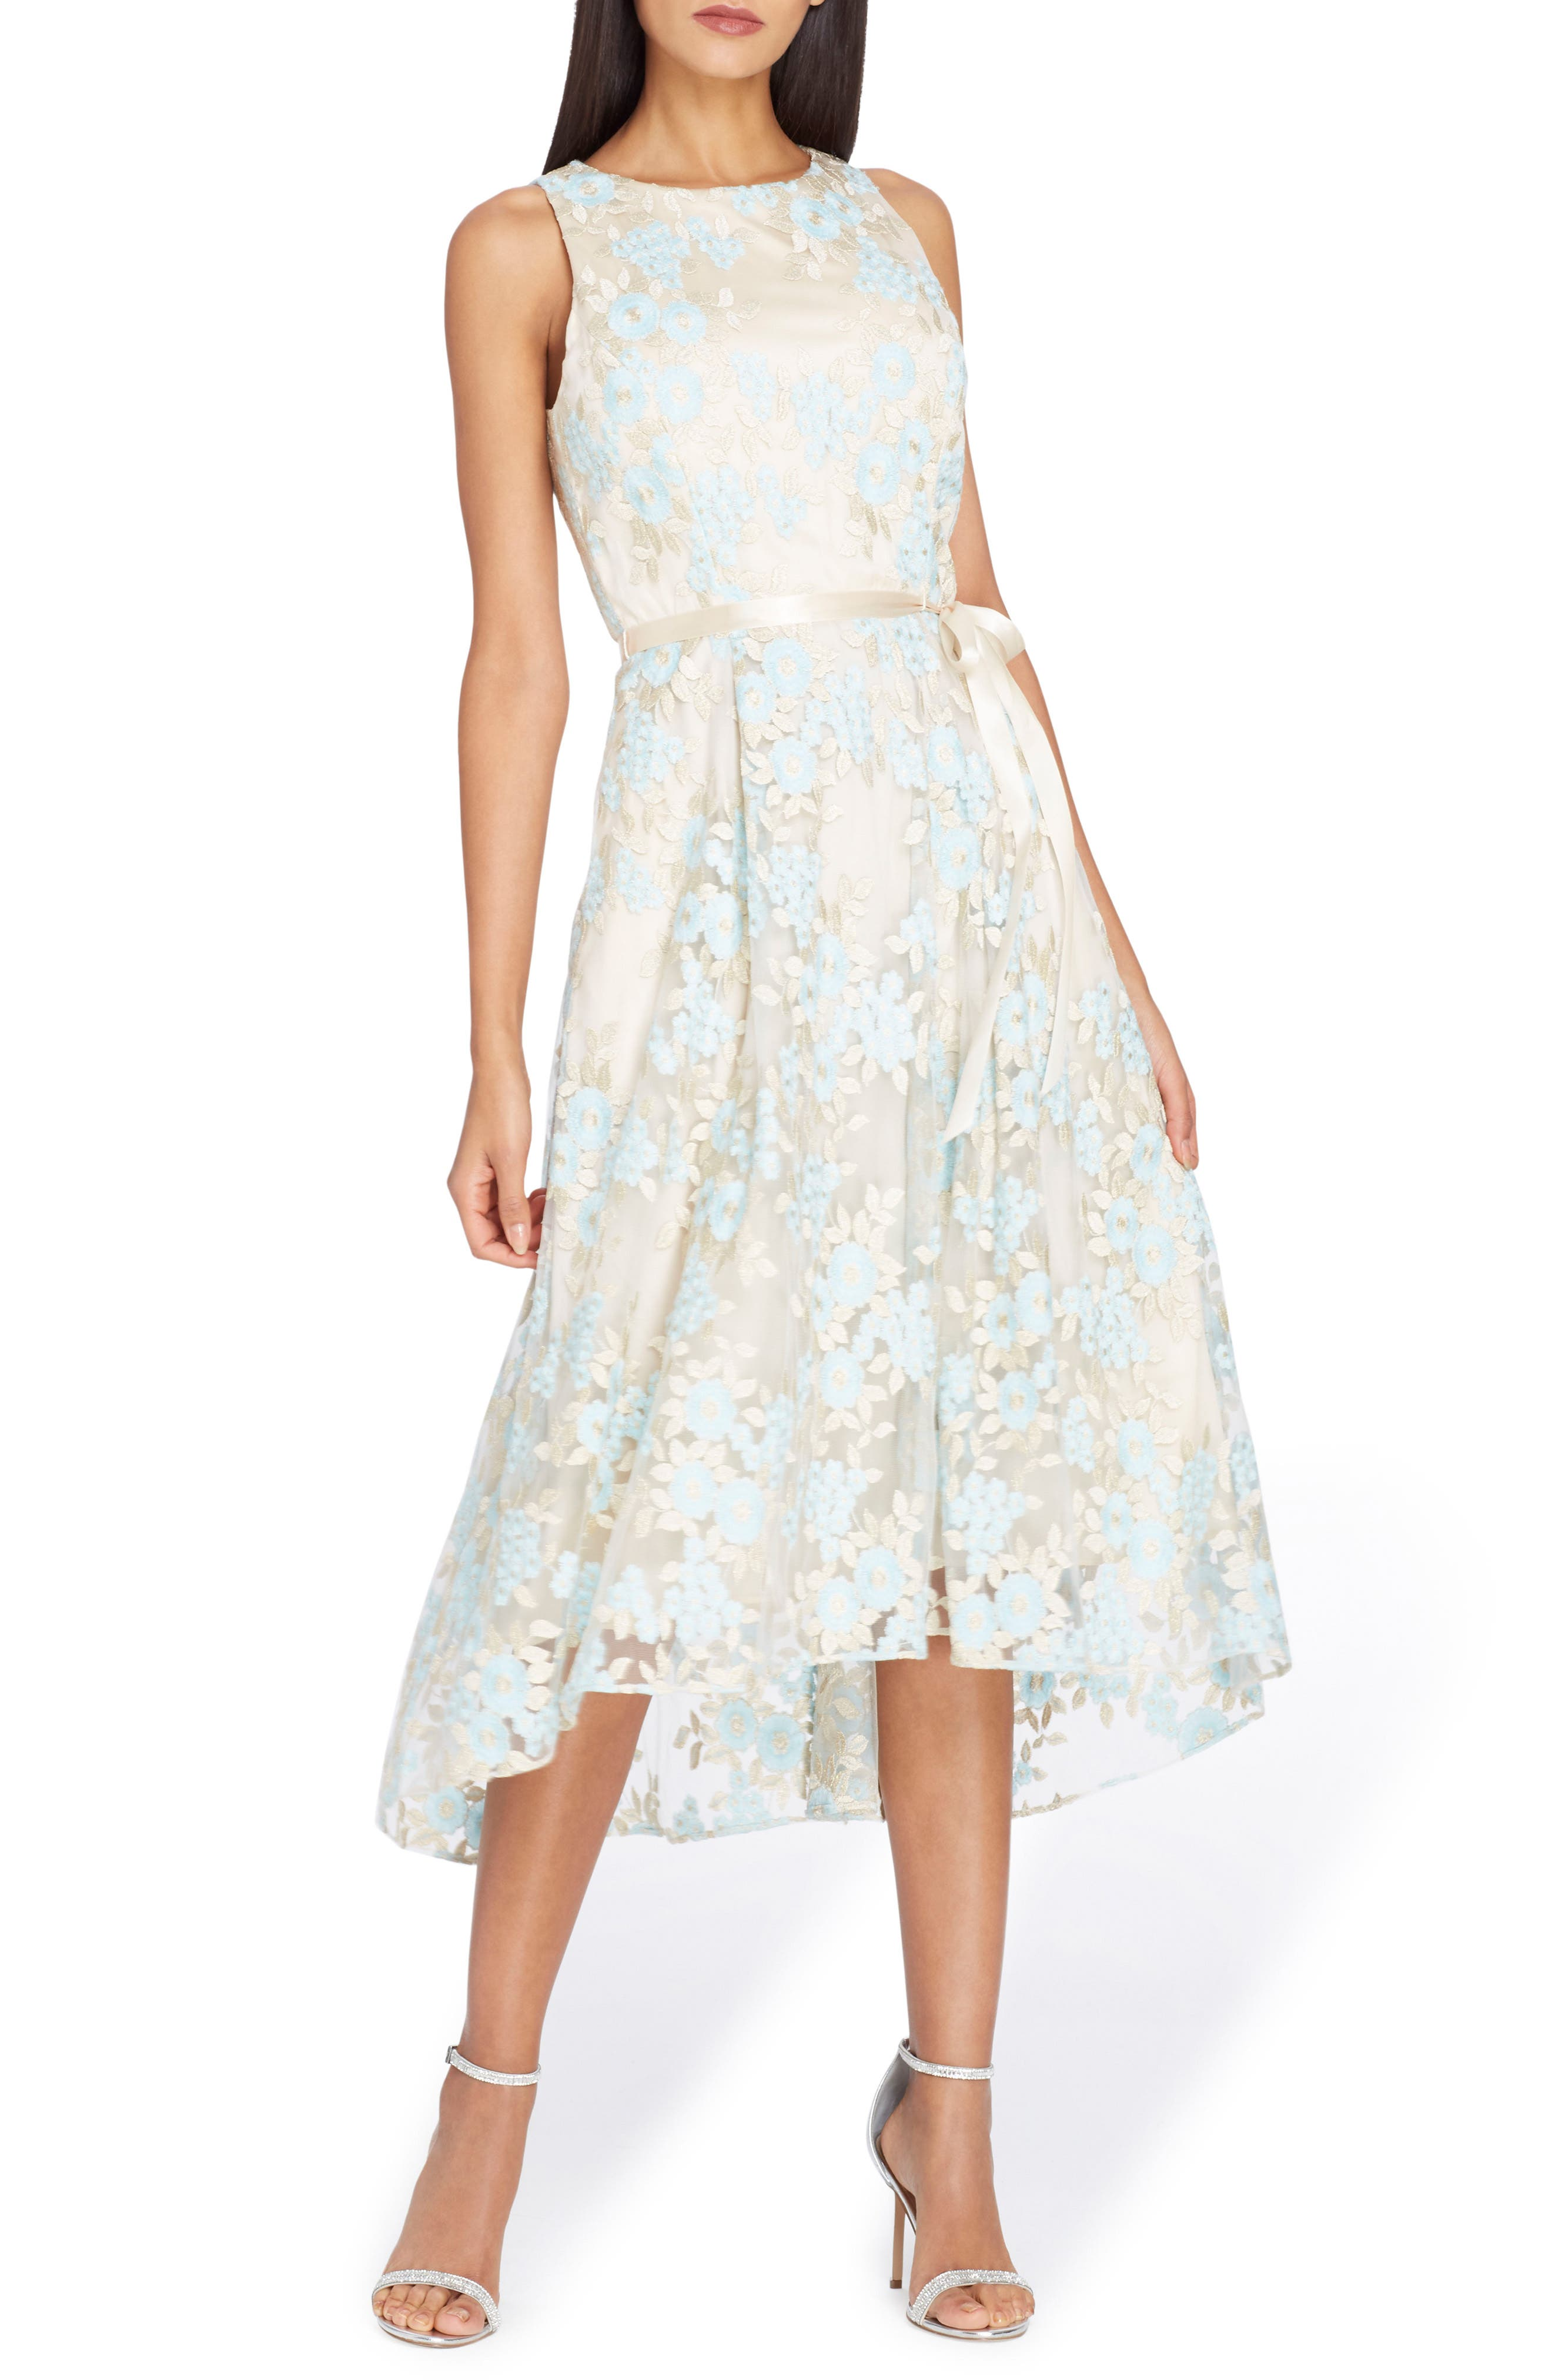 Floral Embroidered Dress,                             Main thumbnail 1, color,                             Nude/ Ice Blue/ Gold